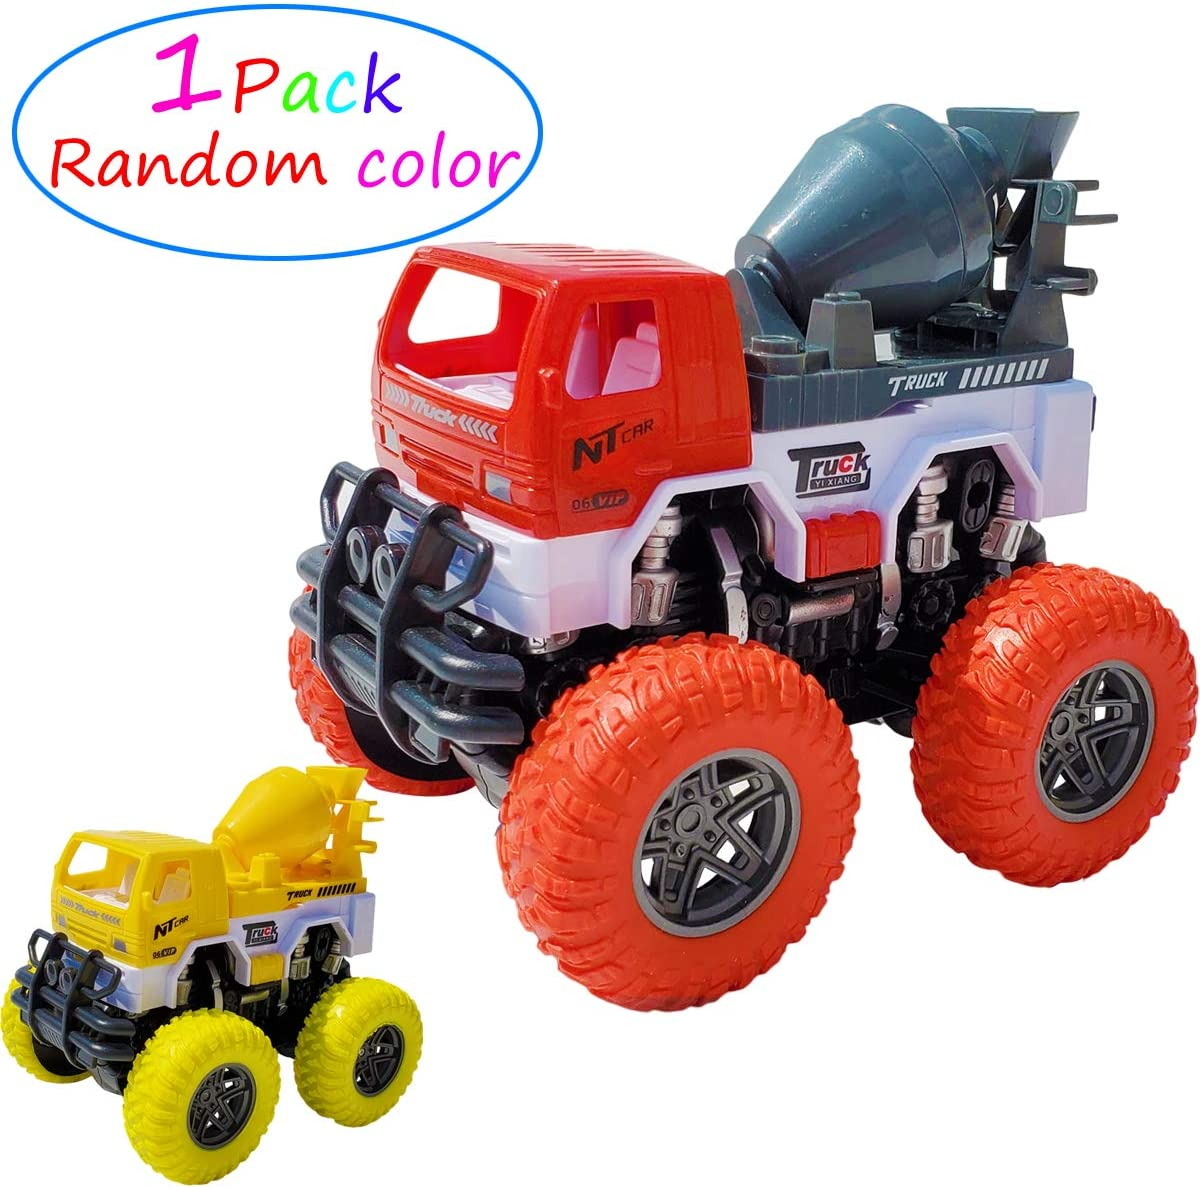 Tockrop Push and Go Construction Vehicle Mixer Truck Toy Big Wheel Friction Powered Car | Inertia Force Vehicle Toy | Great Present for Toddlers Boys Girls and Kids 09